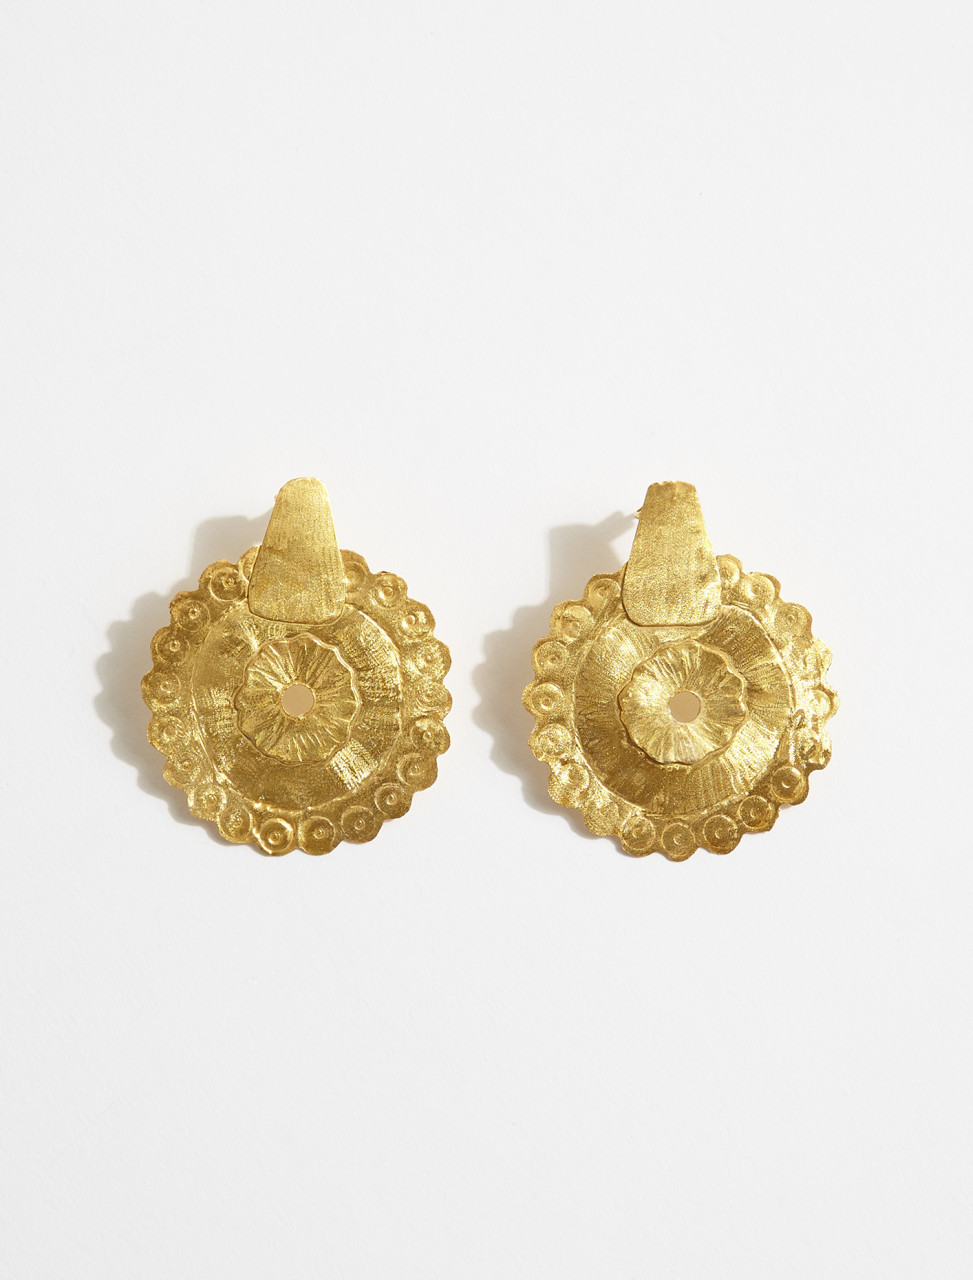 1000737 APRES SKI DISCO EARRINGS IN GOLD